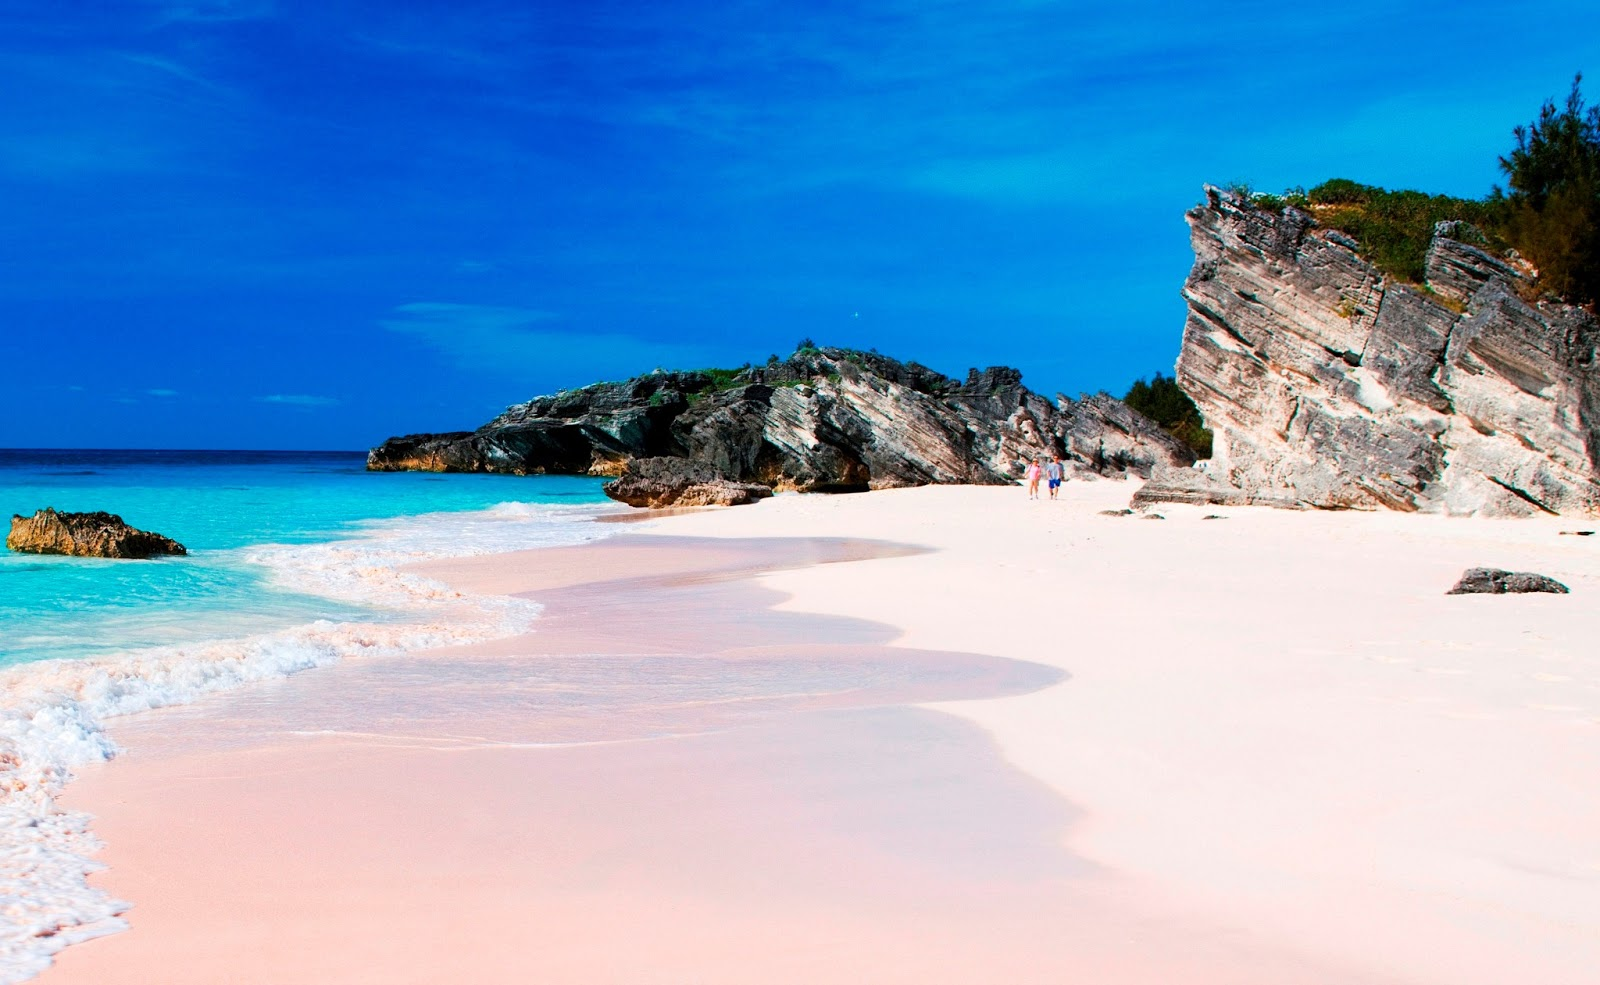 Cruise Diva Norwegian Cruise Line Expands Bermuda Shore Excursions